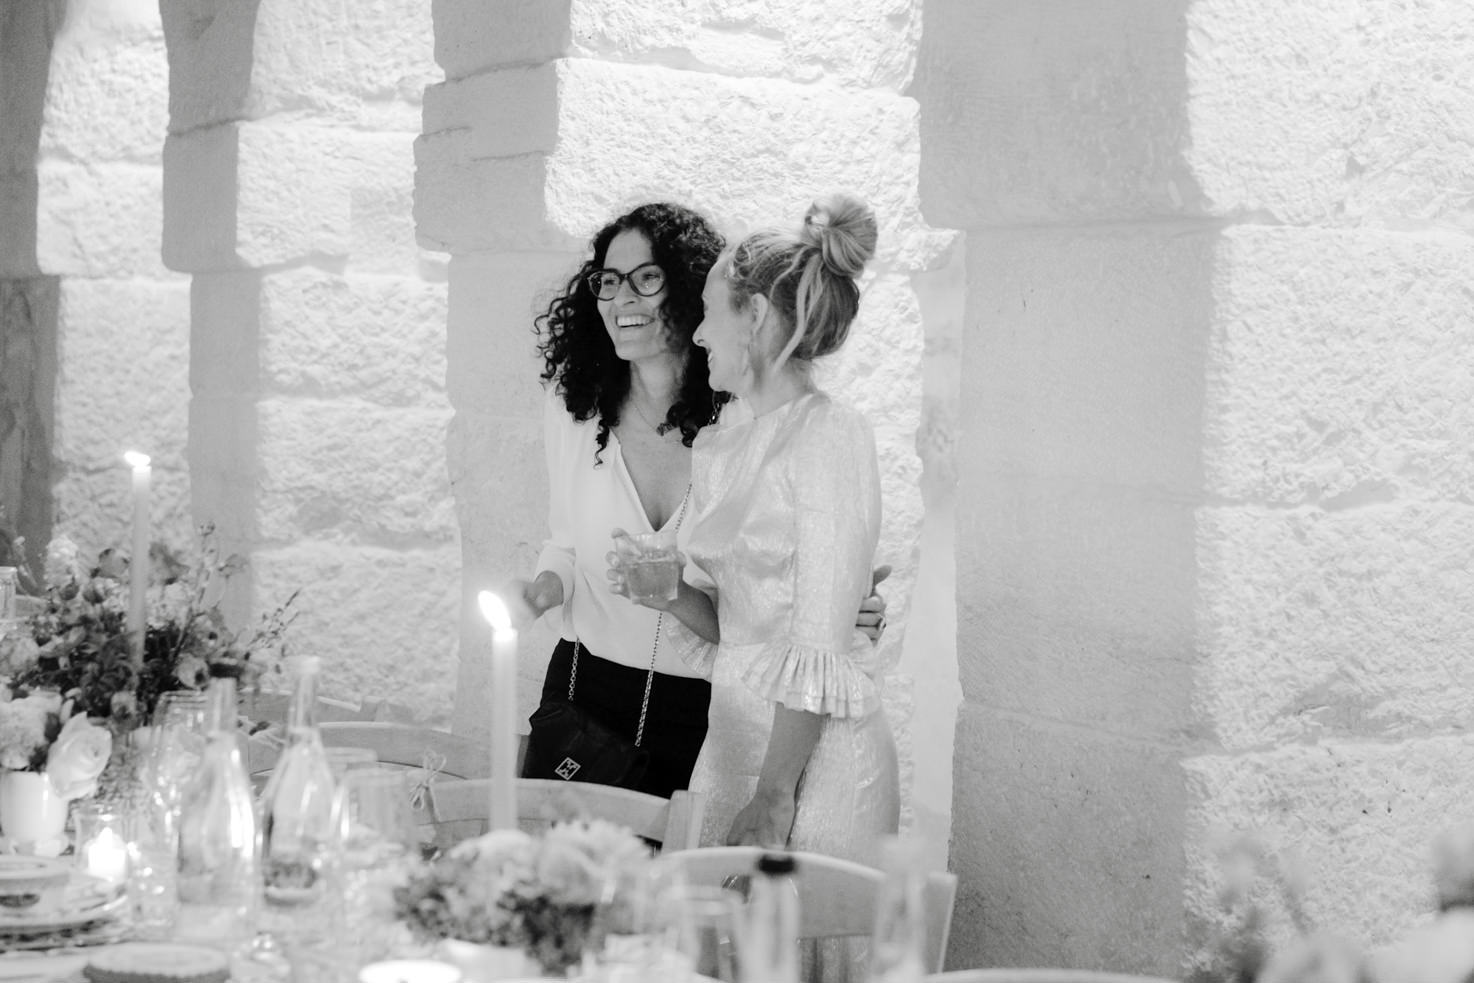 A bride supported by her wedding planner